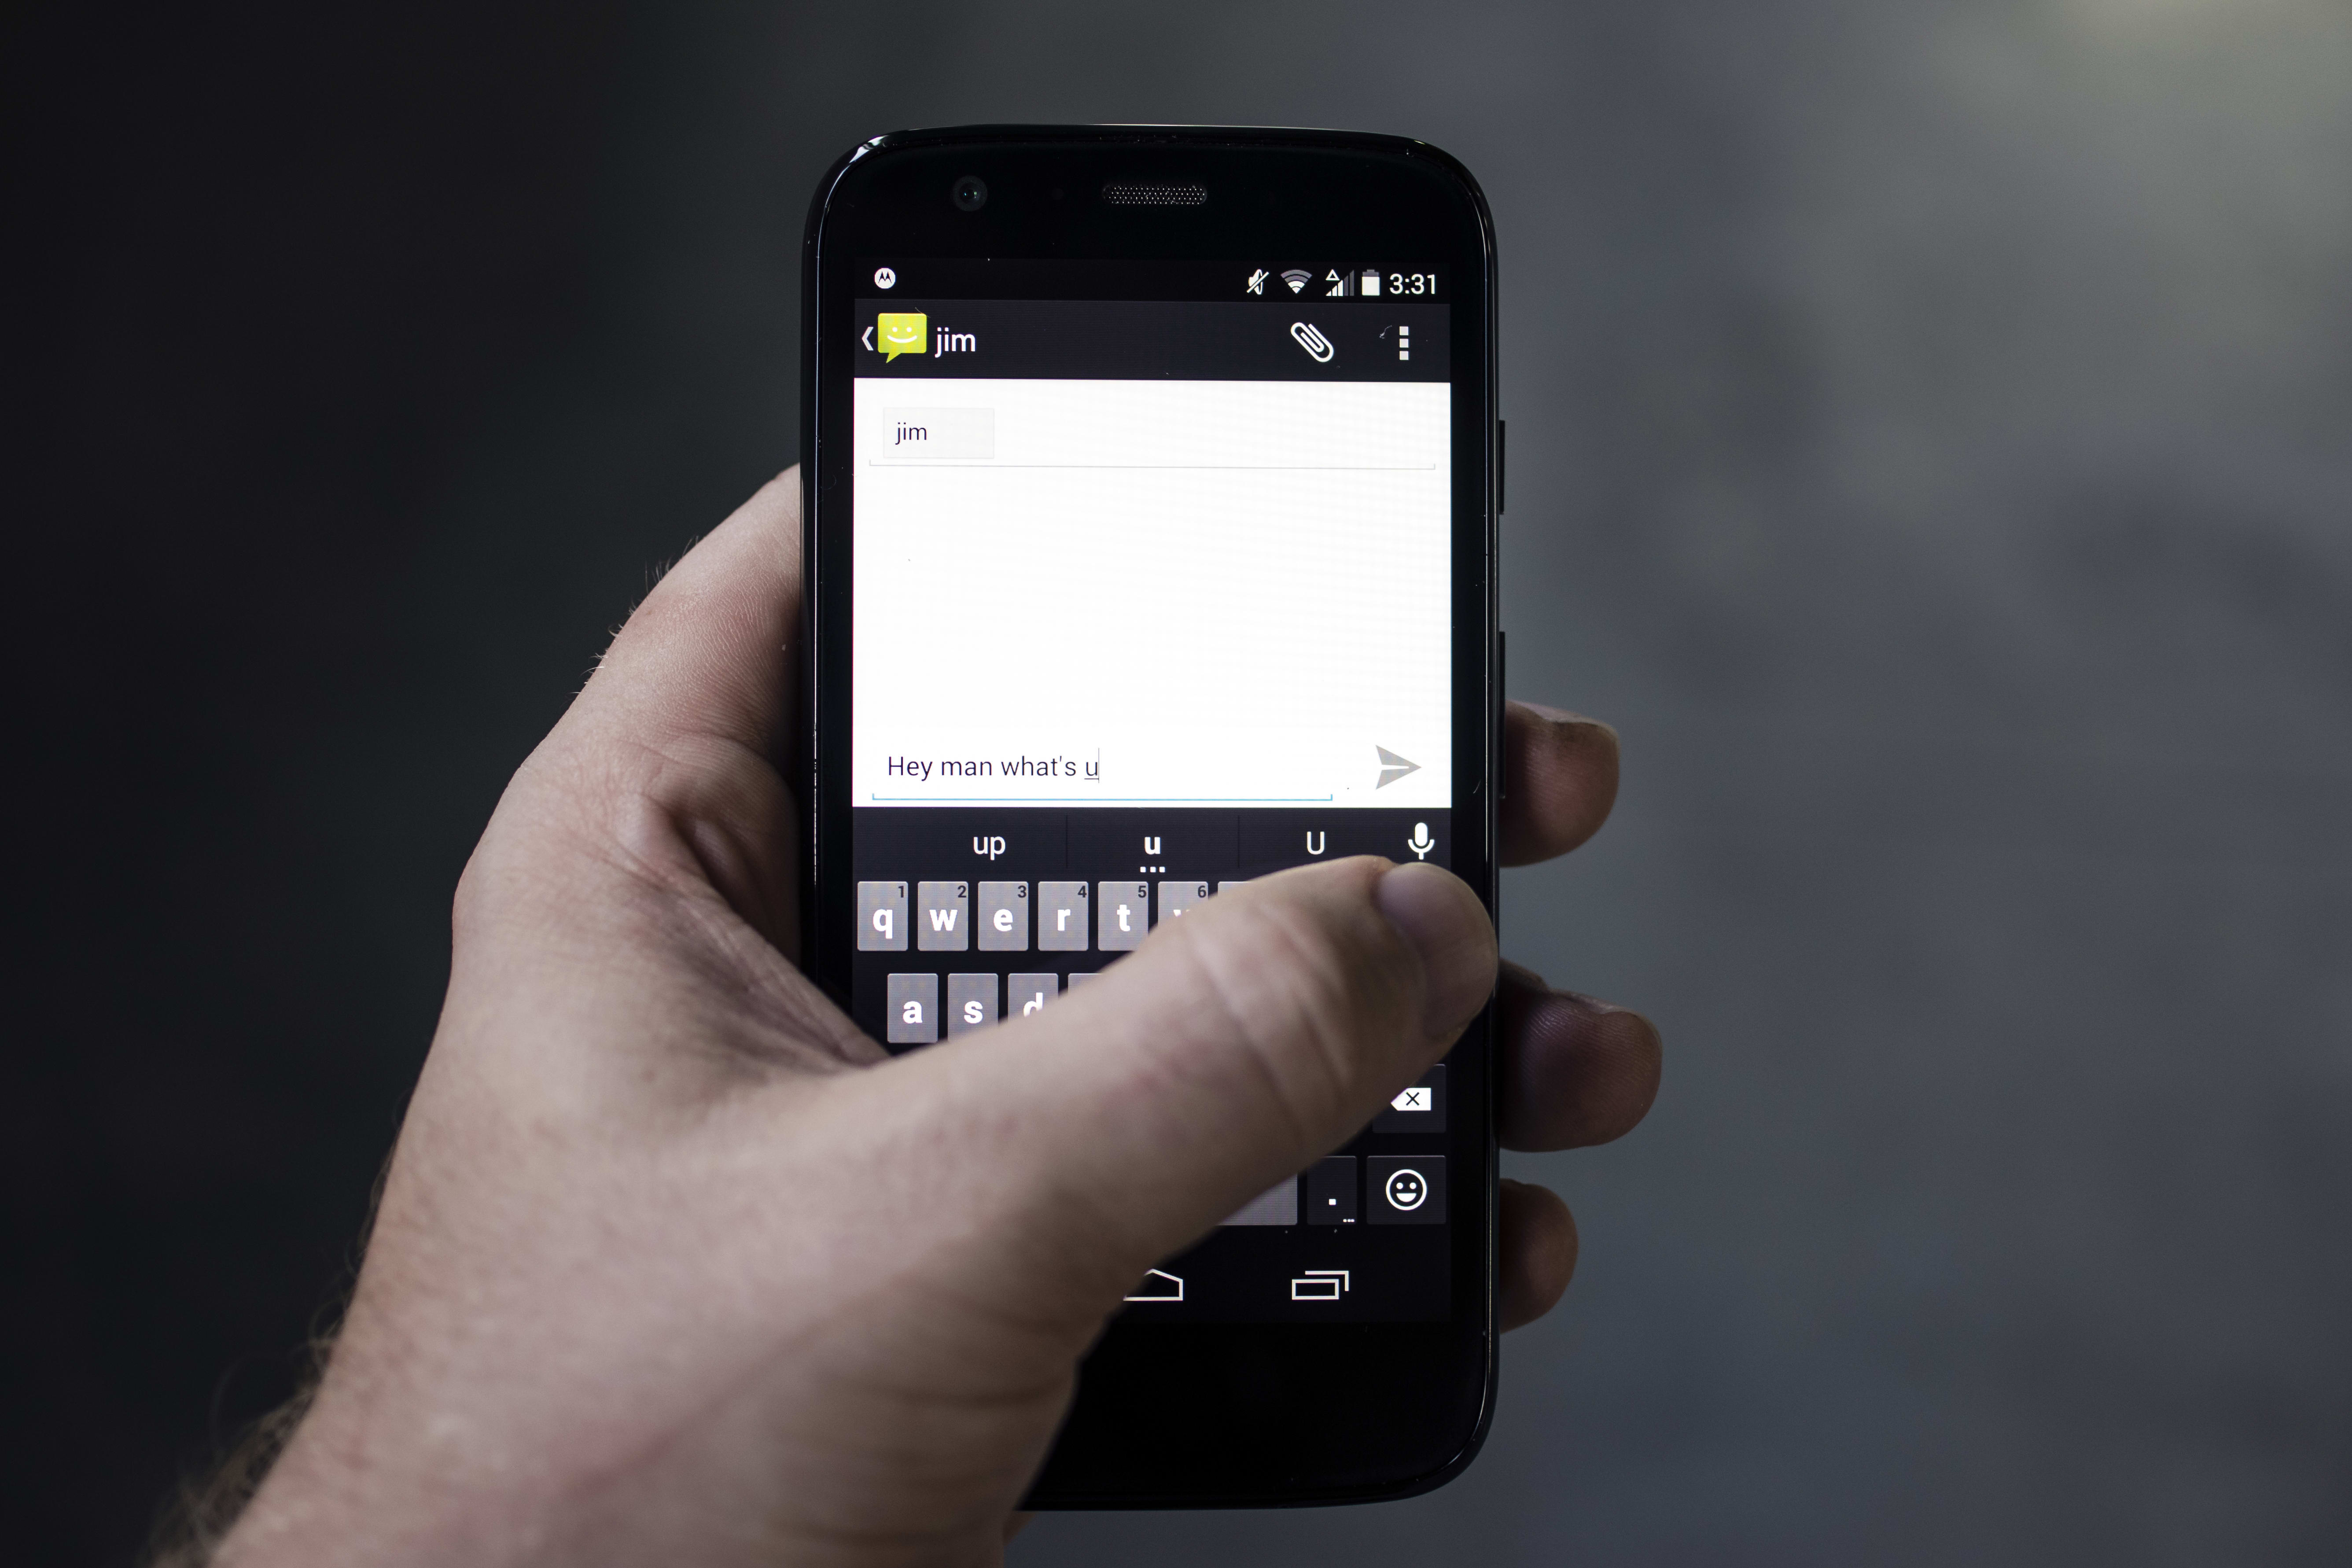 A photo of the Motorola Moto G with 4G LTE's keyboard in use.